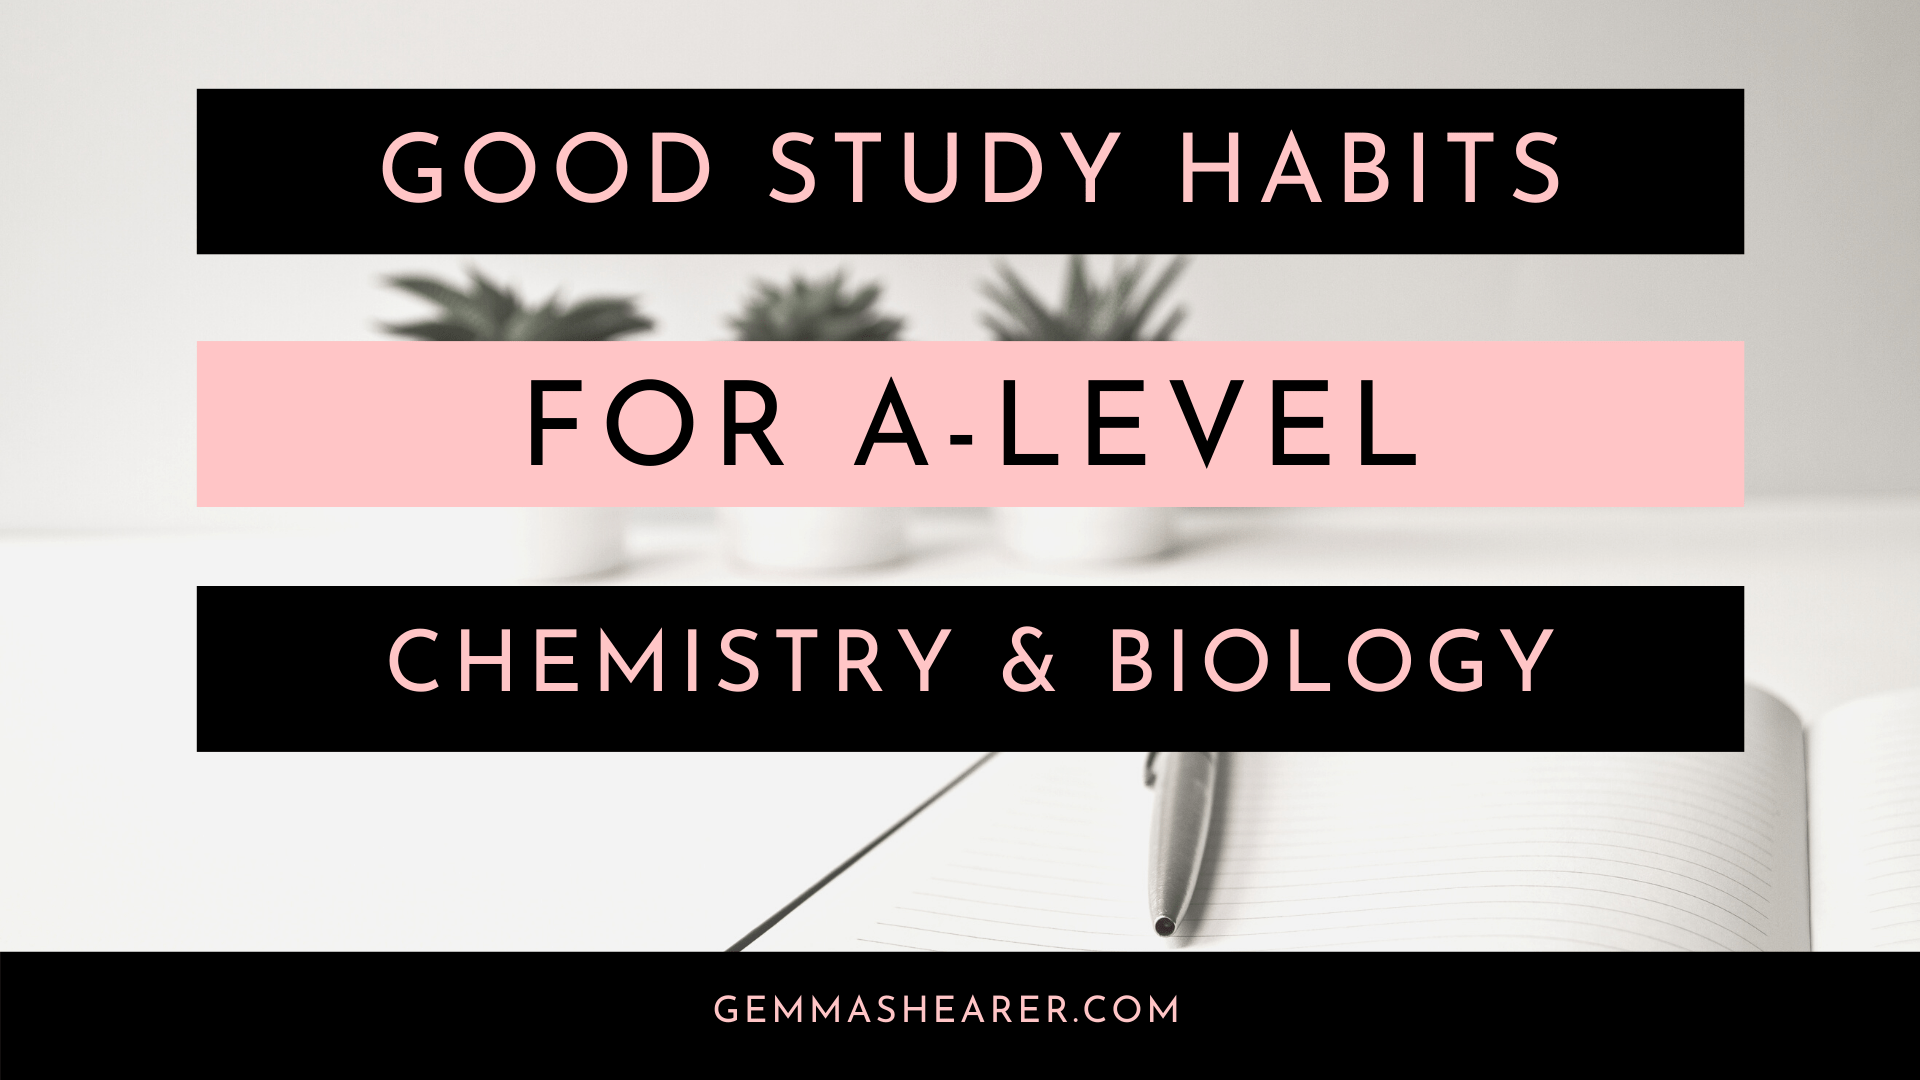 study habits for a-level chemistry and biology